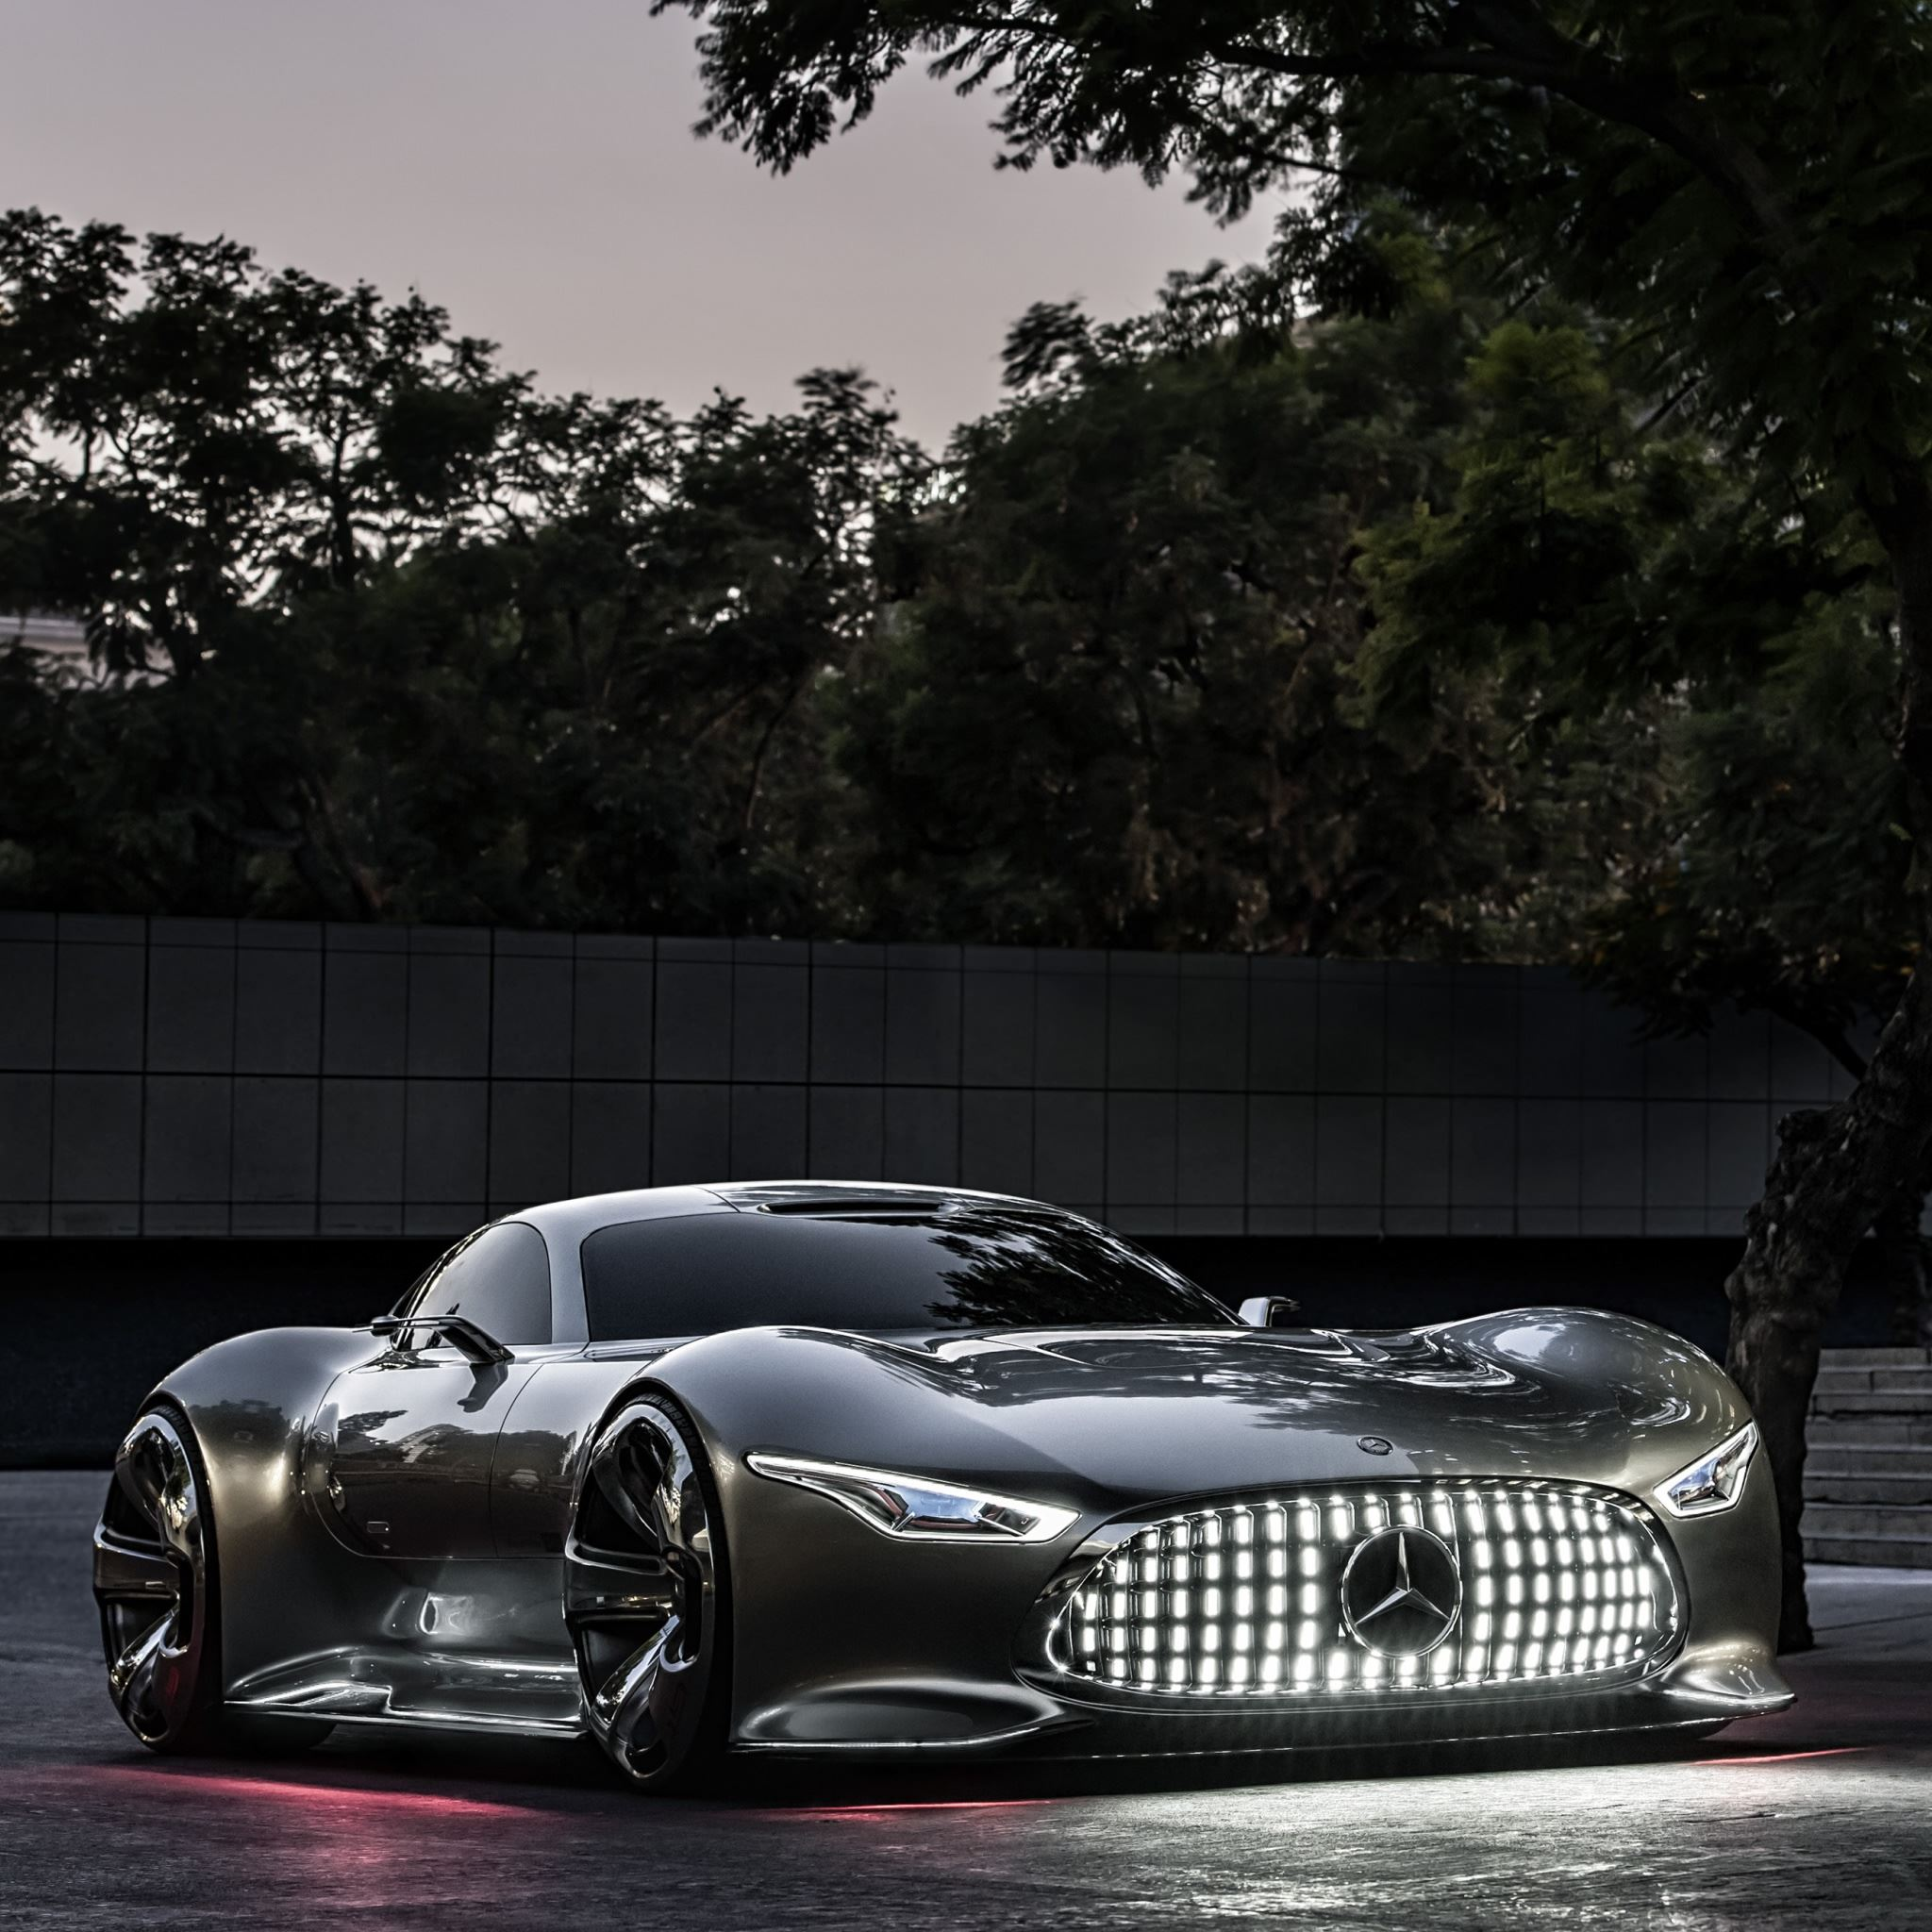 Mercedes Benz Vision Gran Turismo Evening iPad Air wallpaper